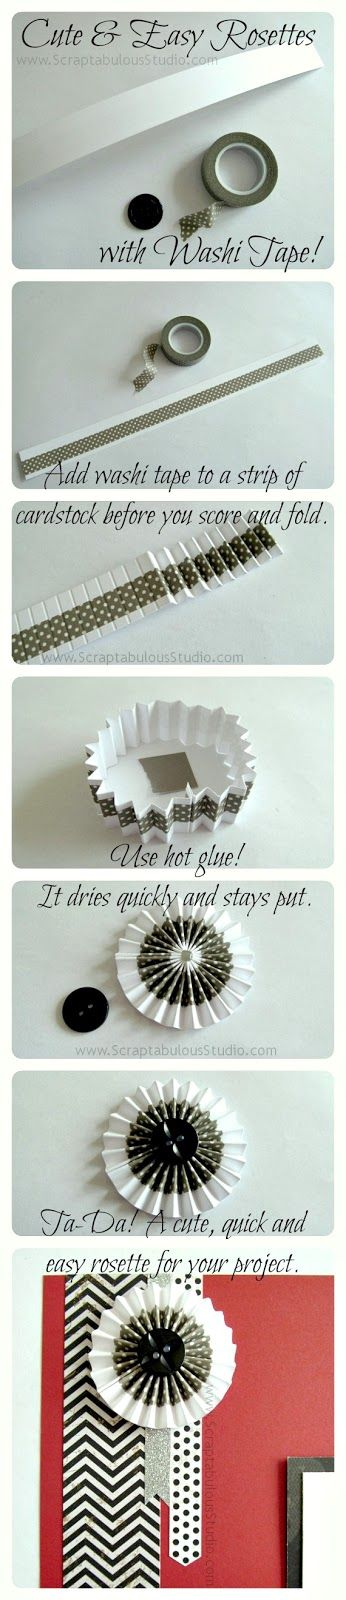 Cute Rosettes with Washi Tape